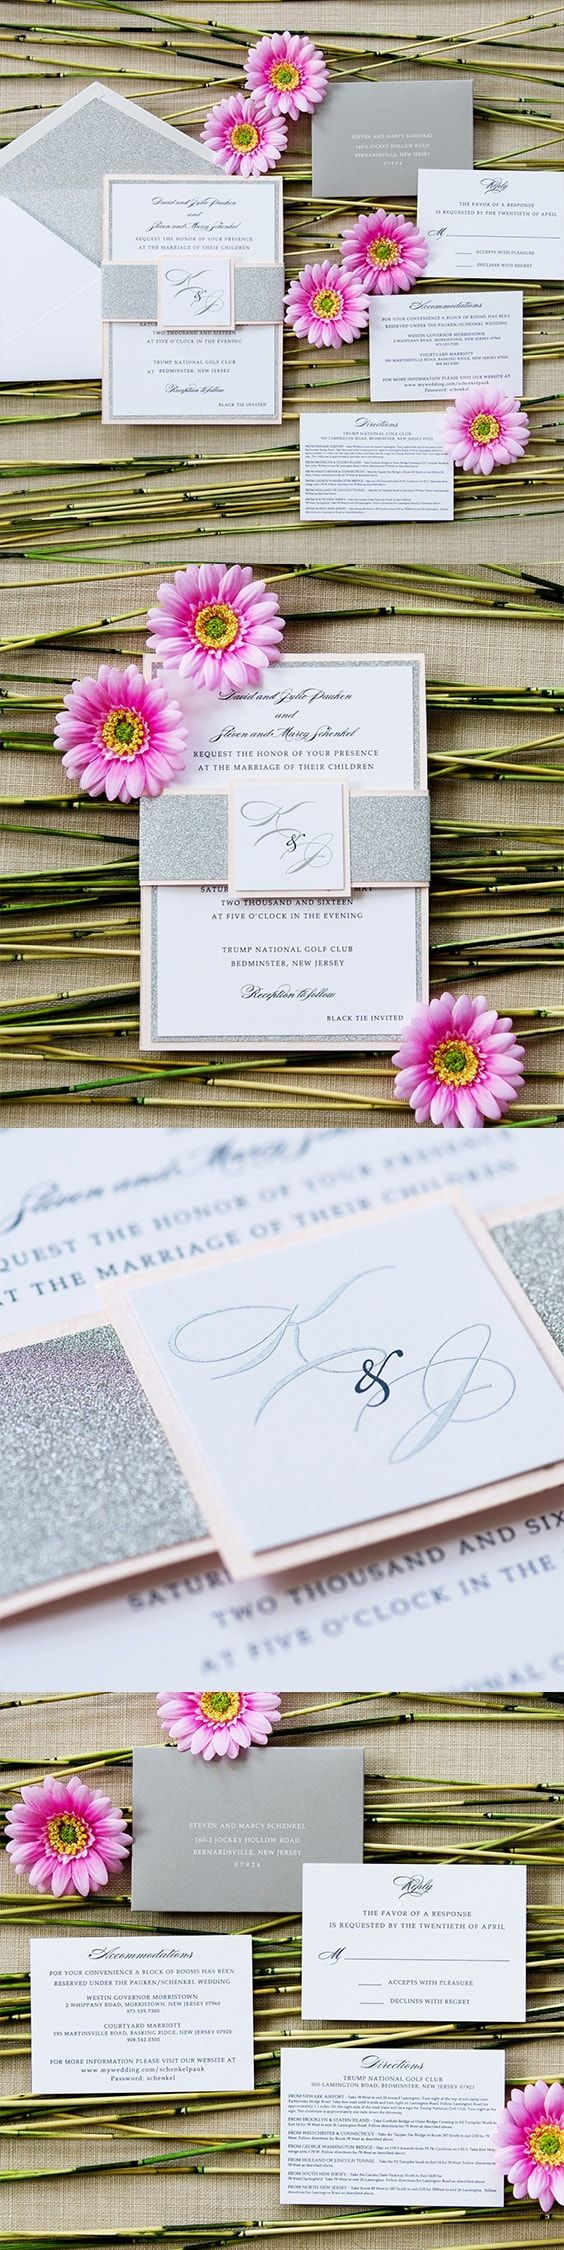 how to address wedding invites%0A Cassie Wedding Invitation